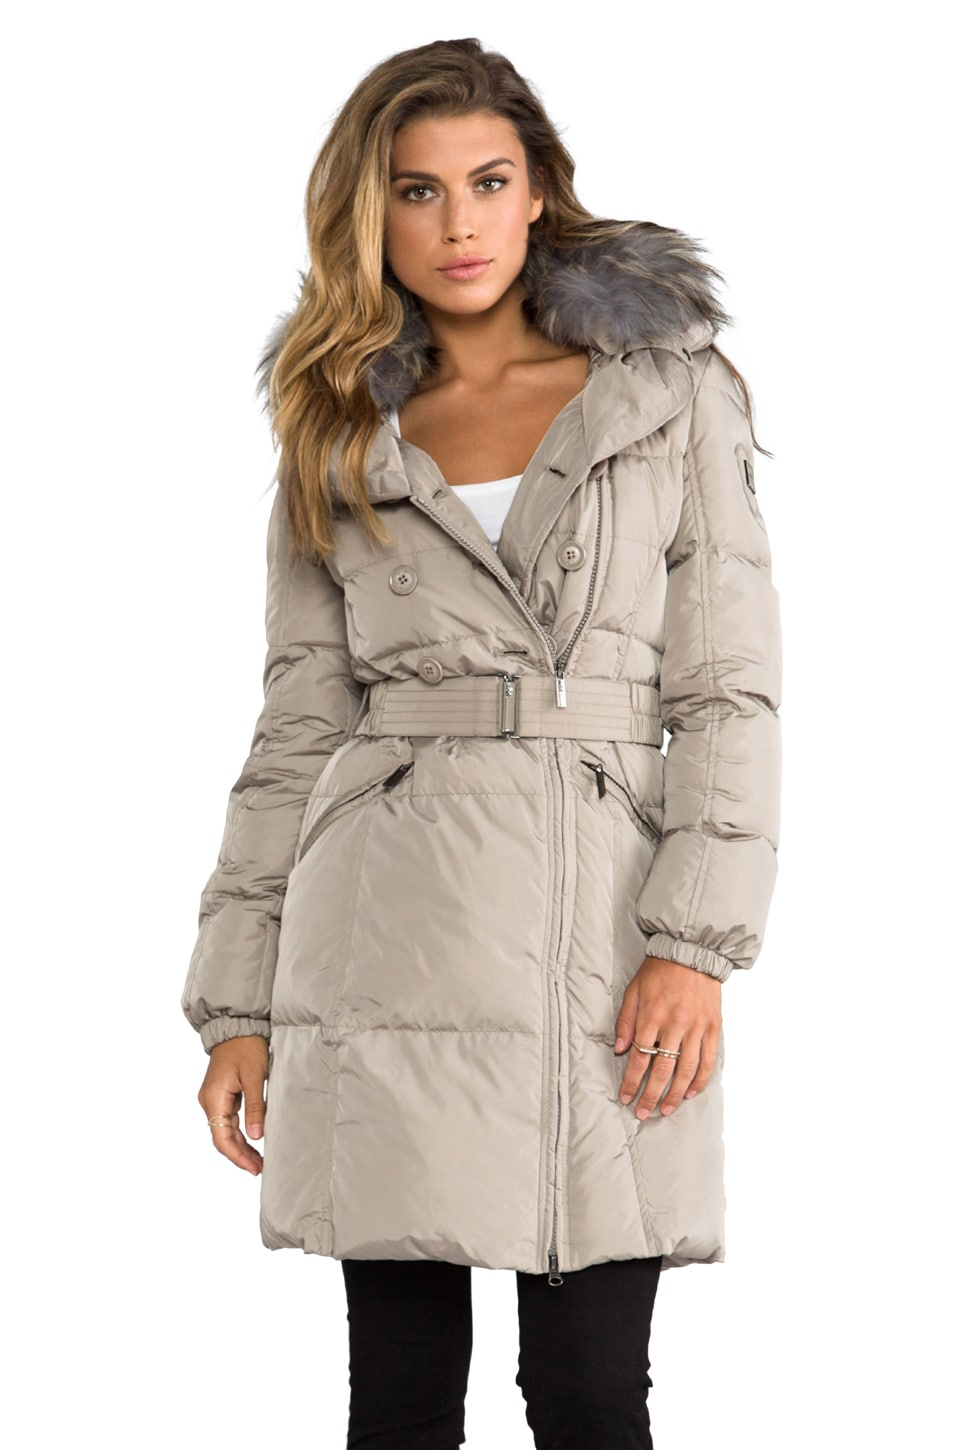 ADD Down Coat With Fur Collar in Beige